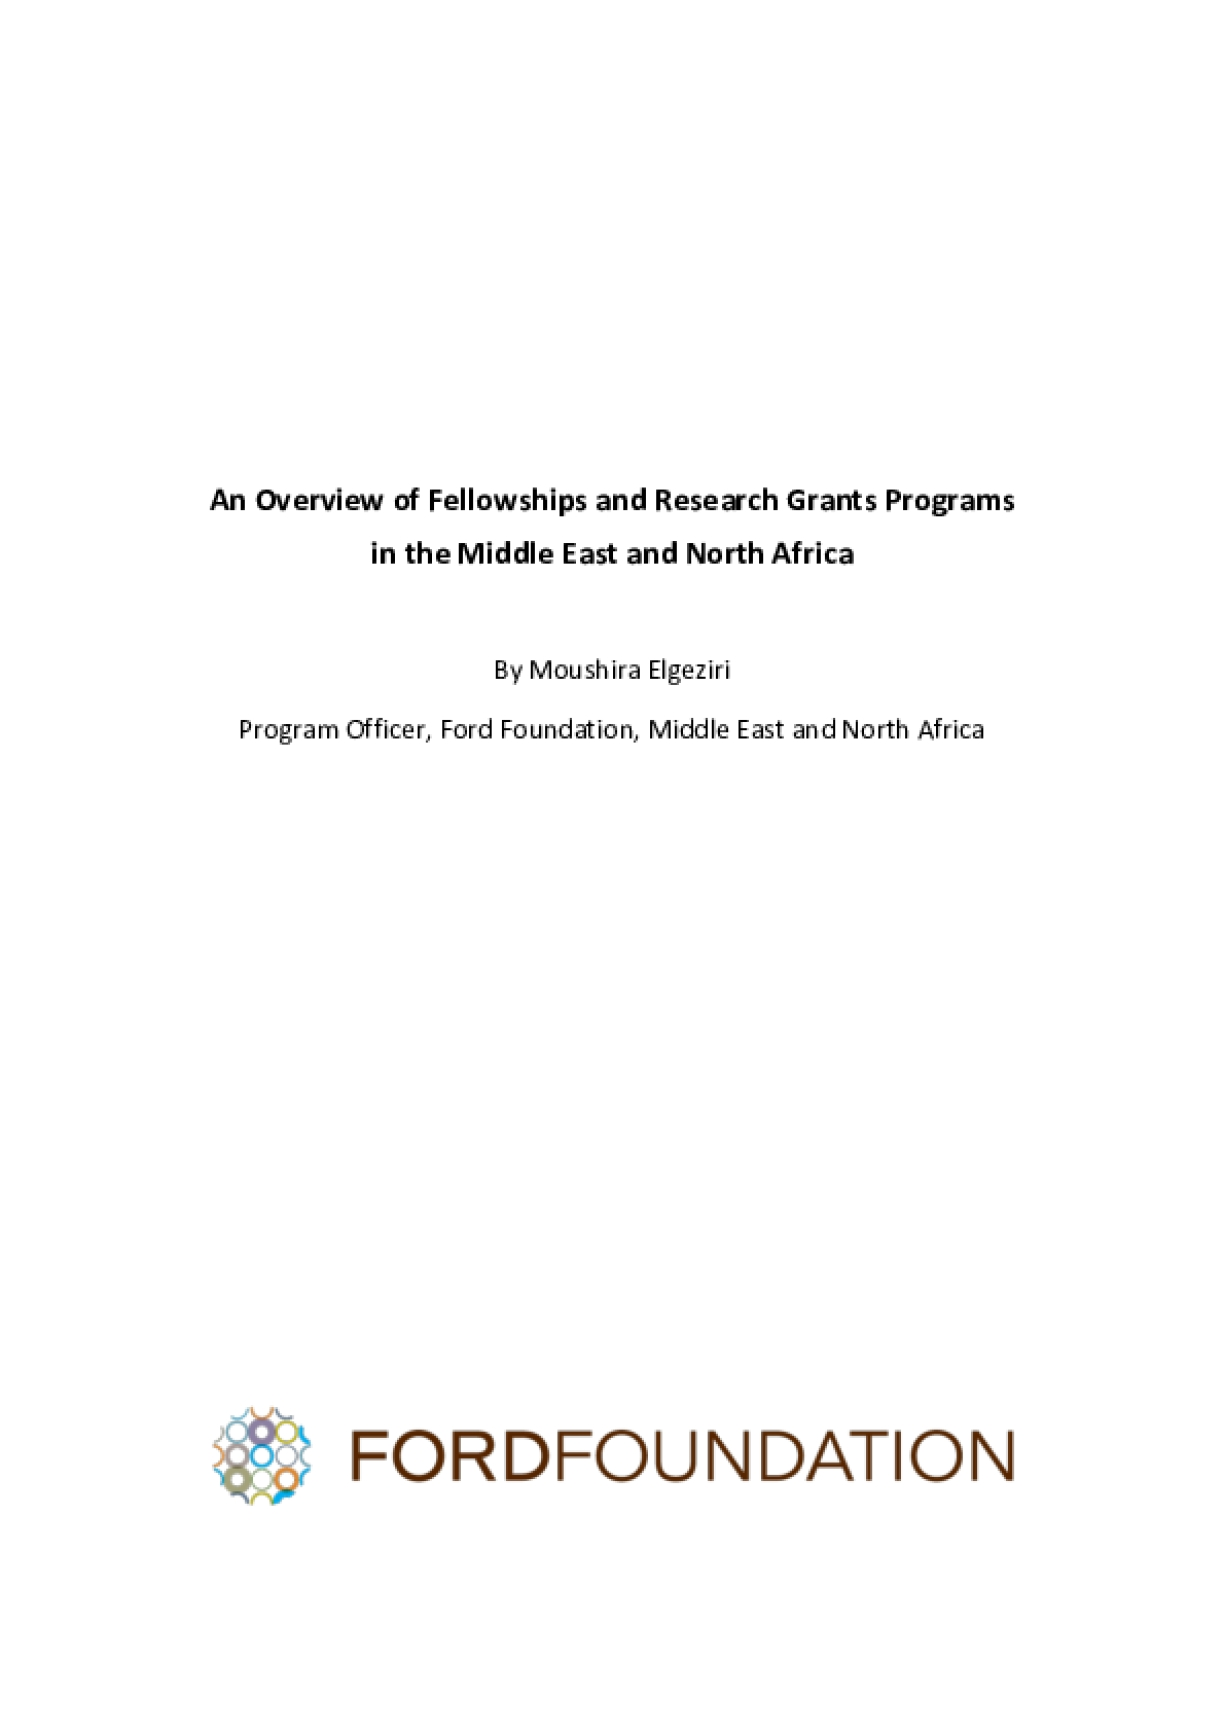 Fellowships and Research Grants Programs in the Middle East and North Africa: An Overview